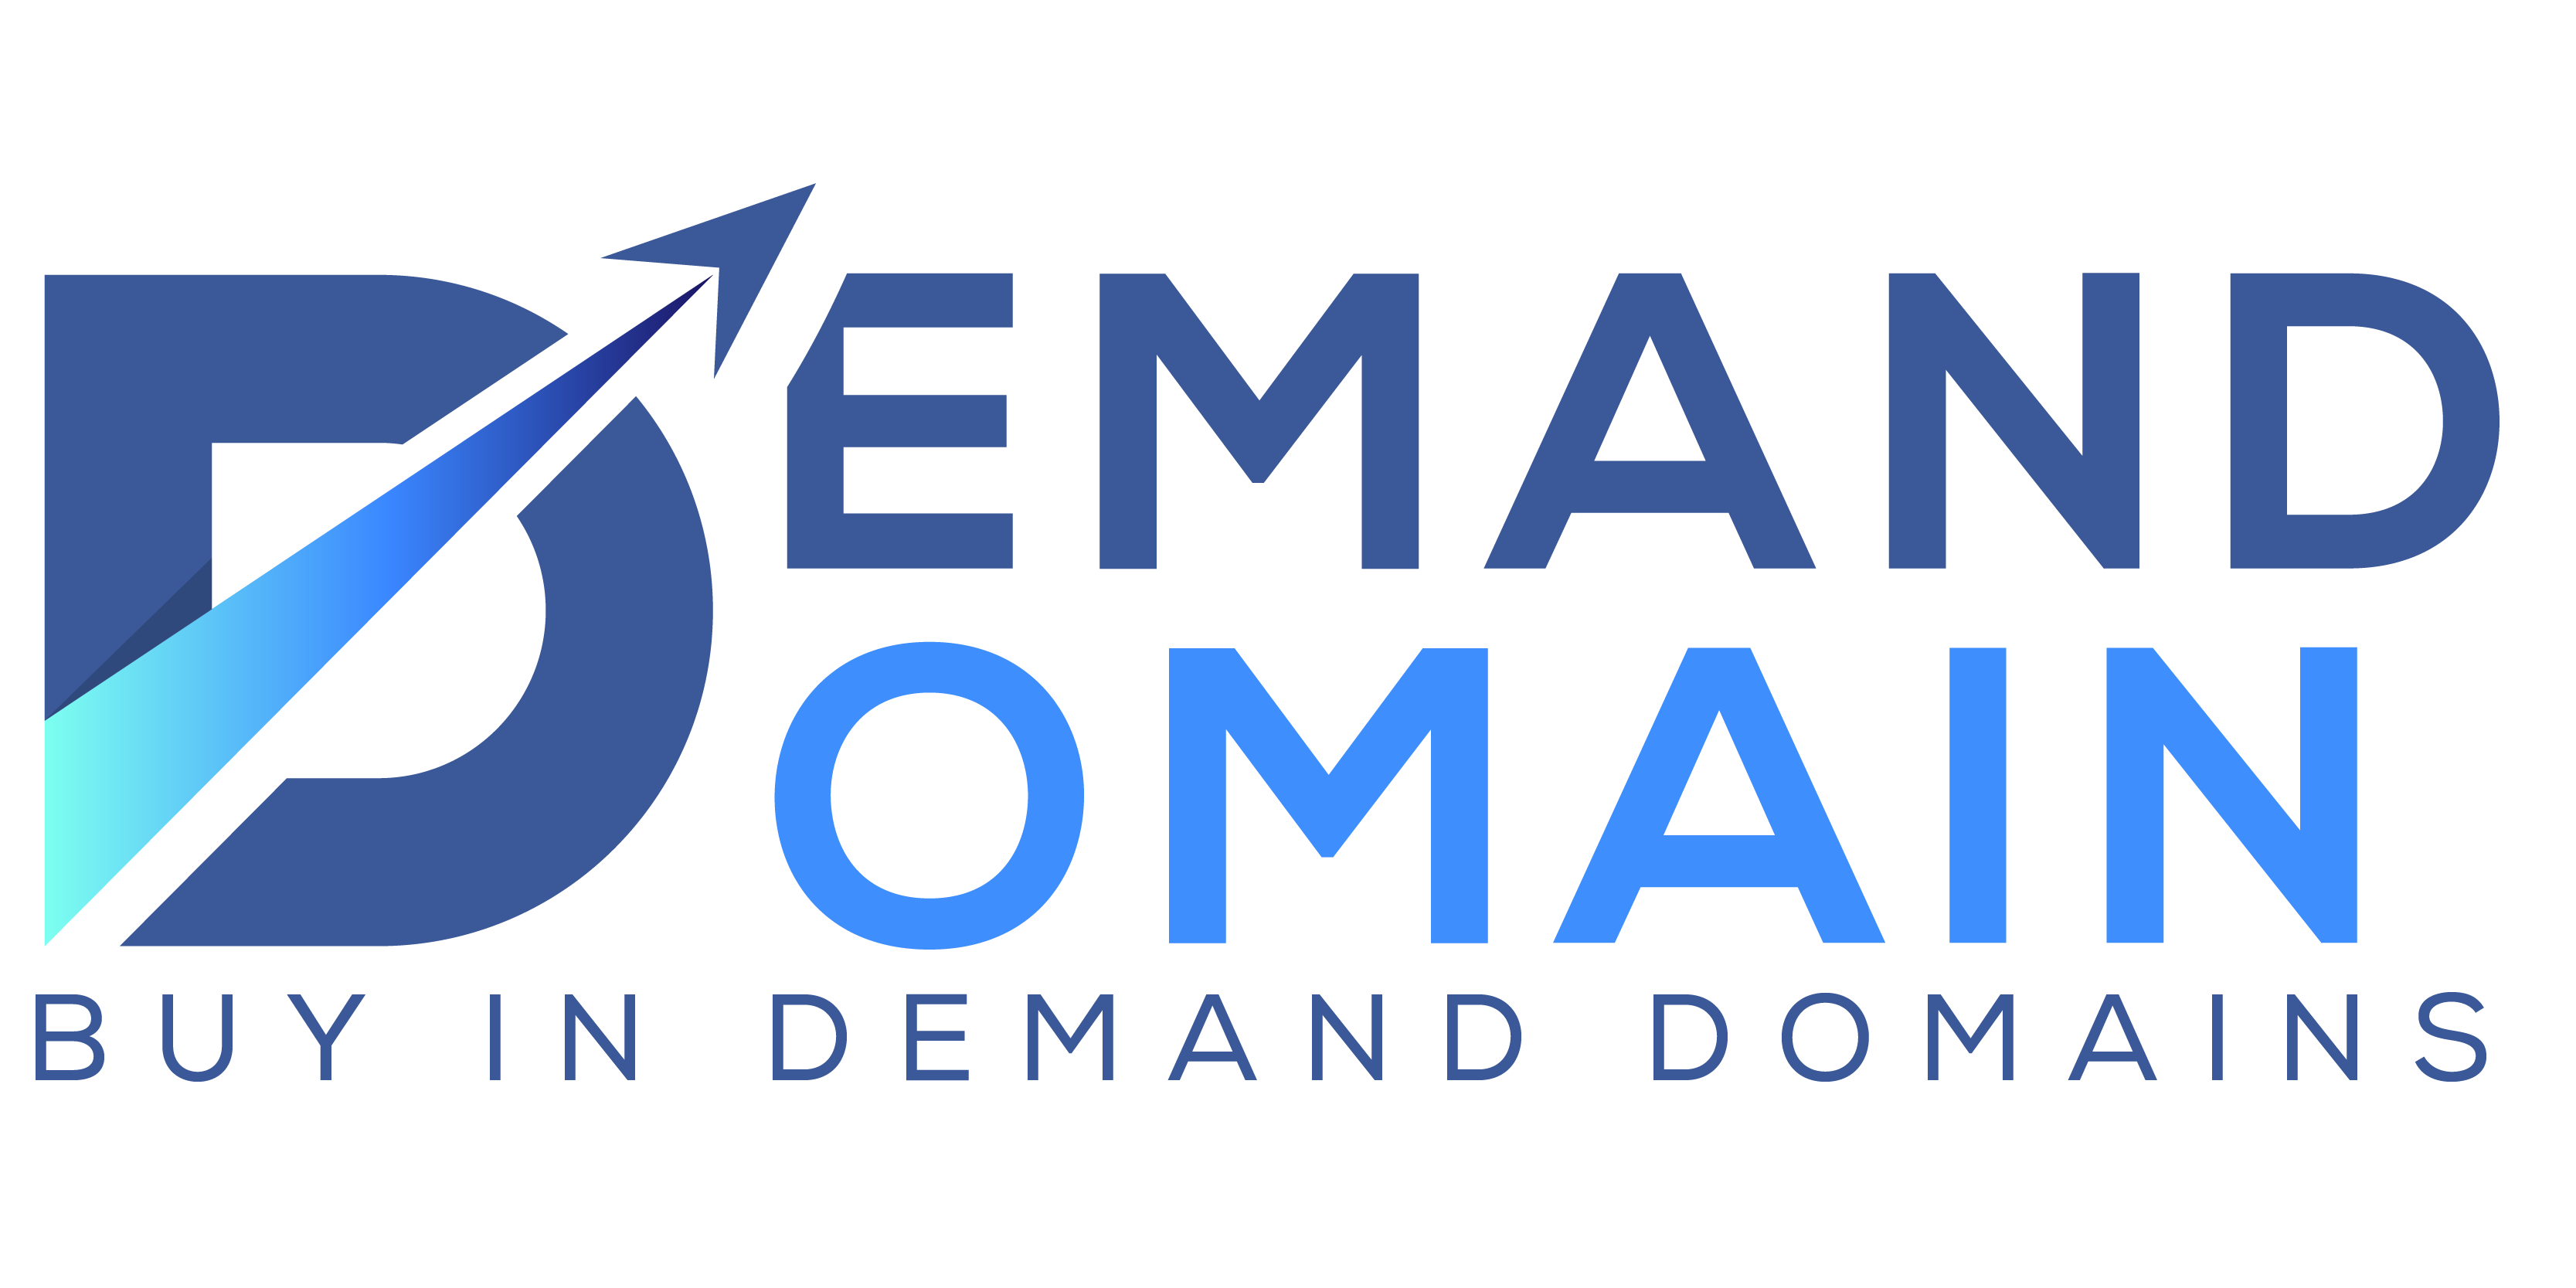 Demand Domain